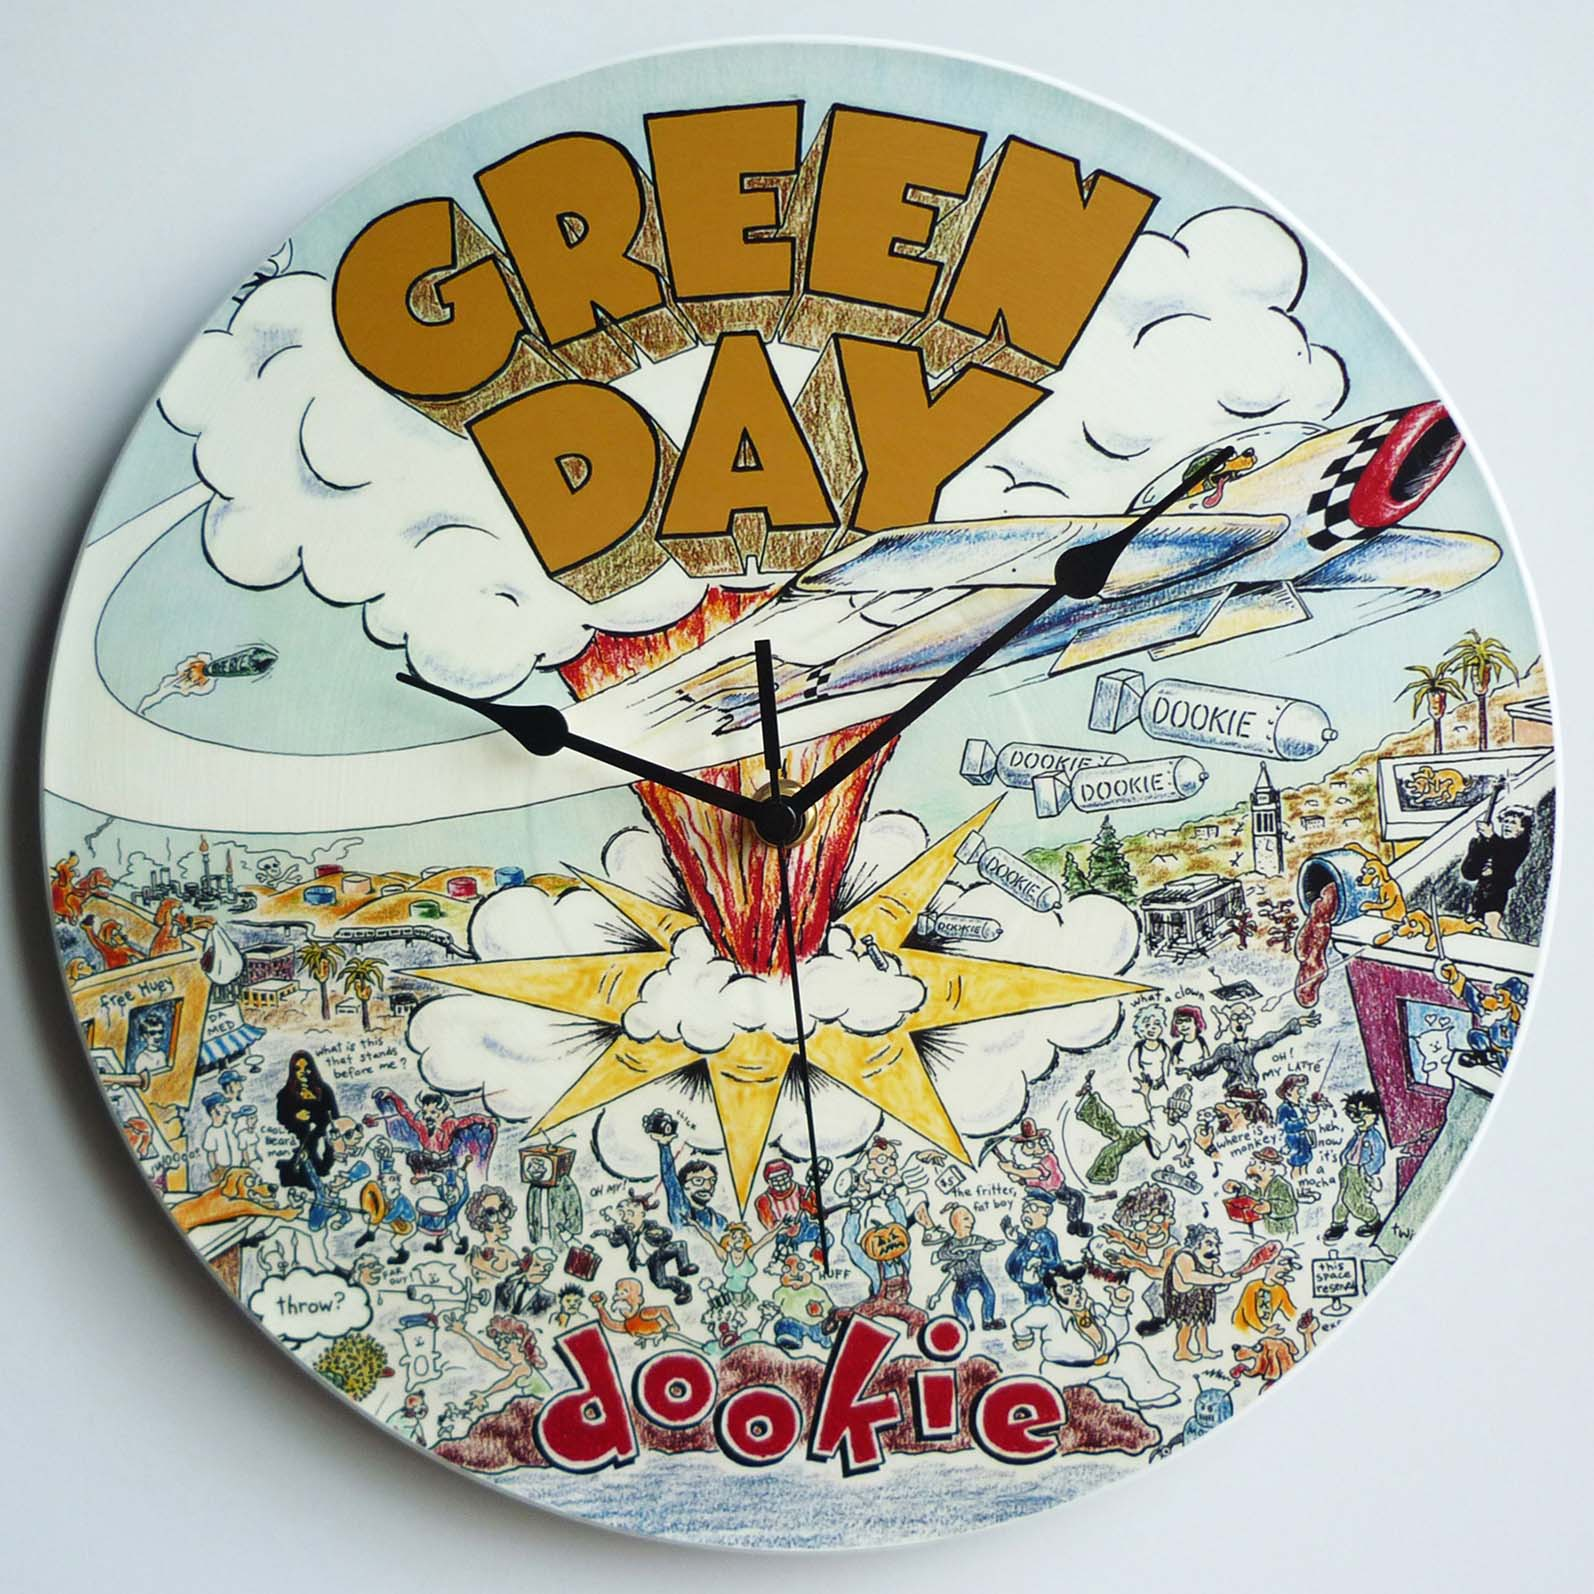 Greenday Dookie 12 Lp Vinyl Record Wall Clock The